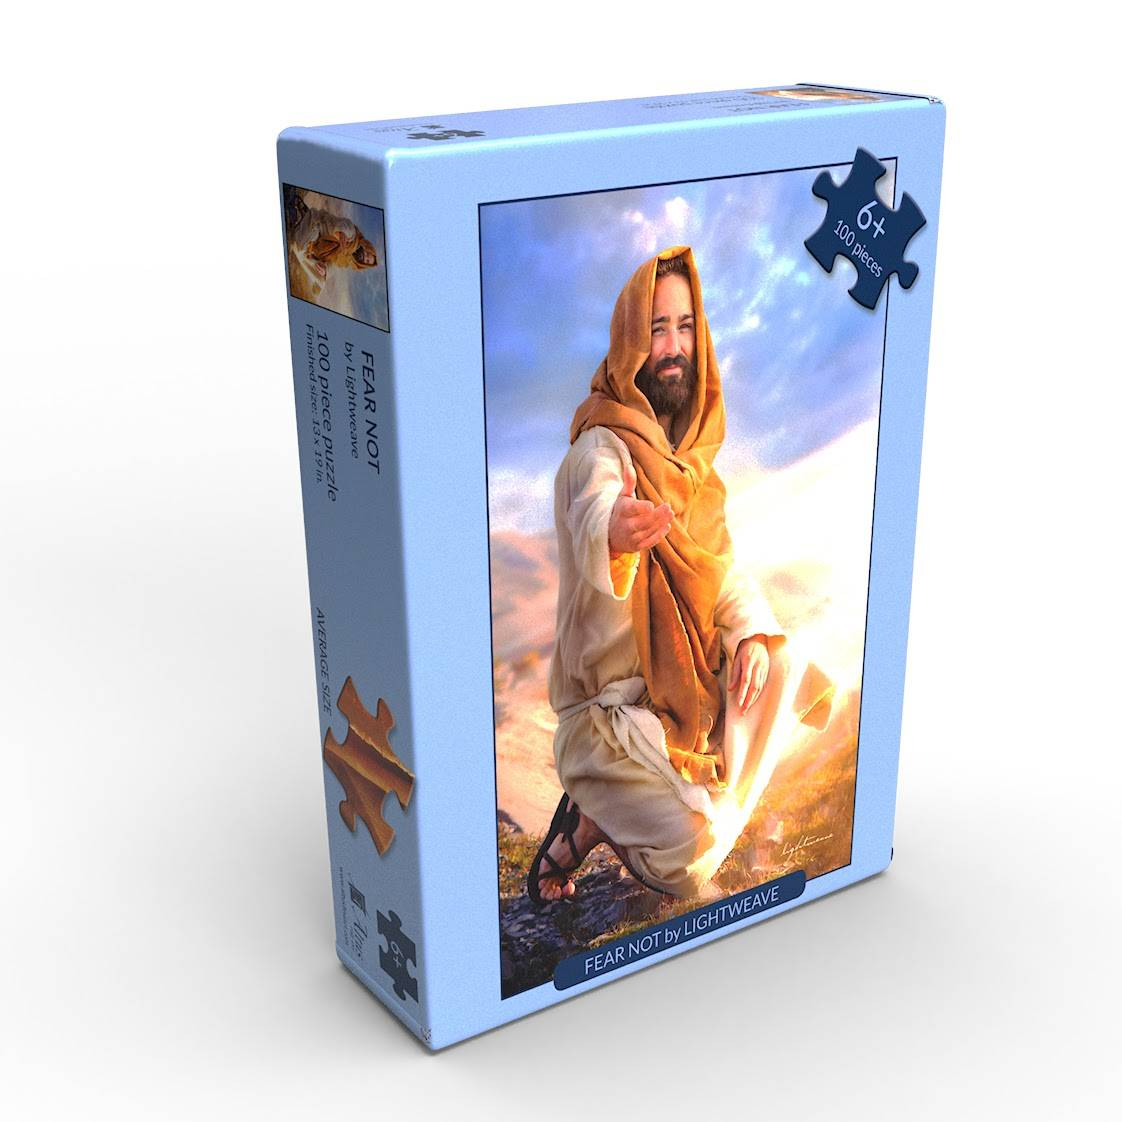 LDS art puzzle featuring an image of Jesus Christ by Kelsy and Jessy Lightweave.